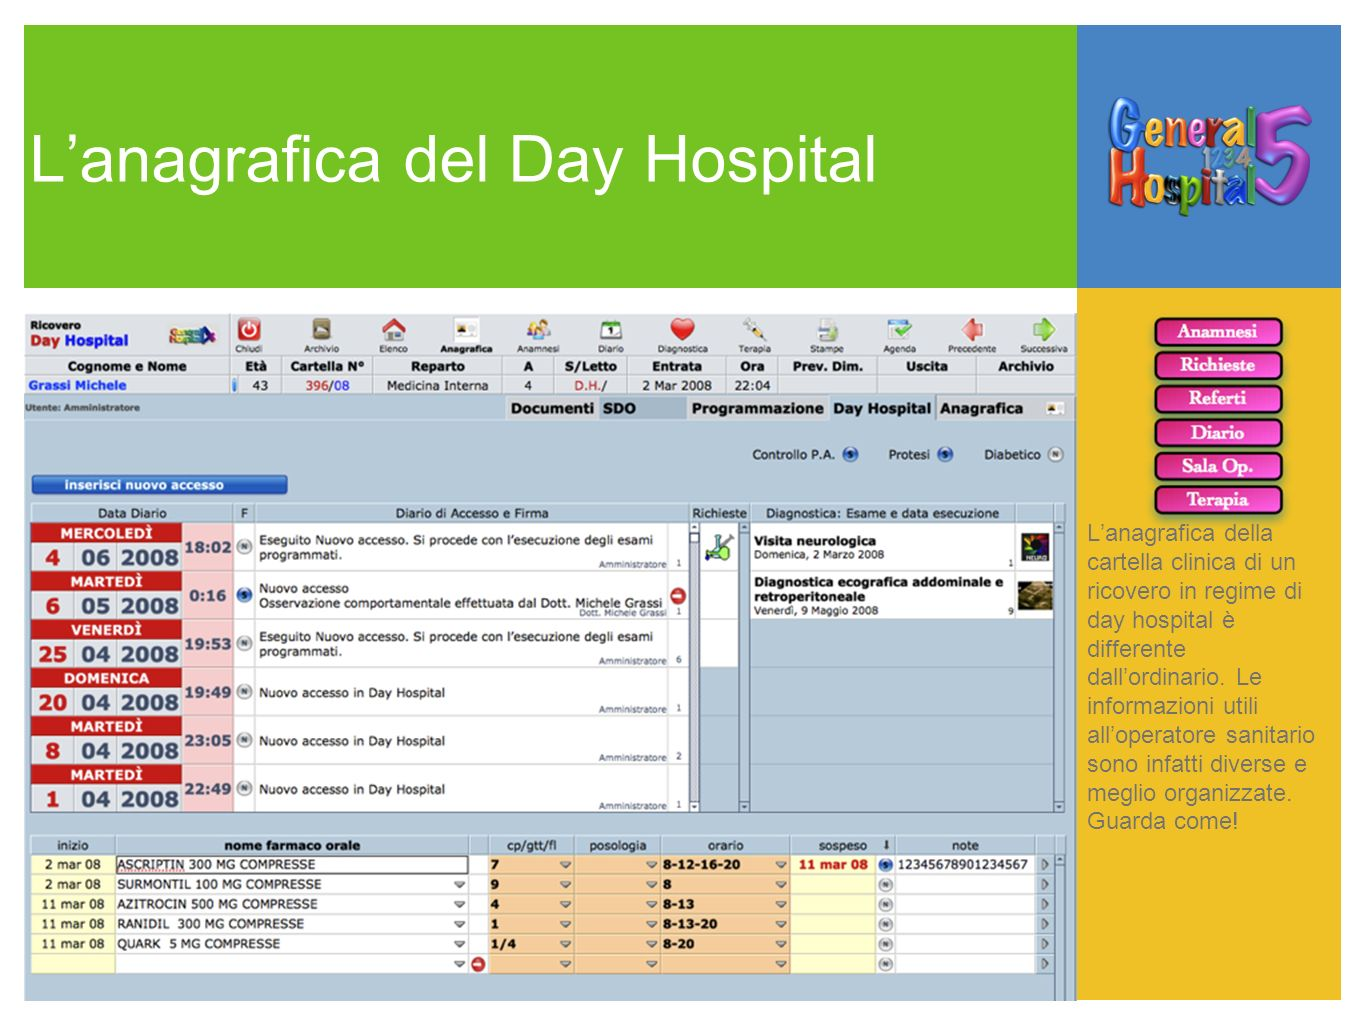 Lanagrafica del Day Hospital Lanagrafica della cartella clinica di un ricovero in regime di day hospital è differente dallordinario. Le informazioni u